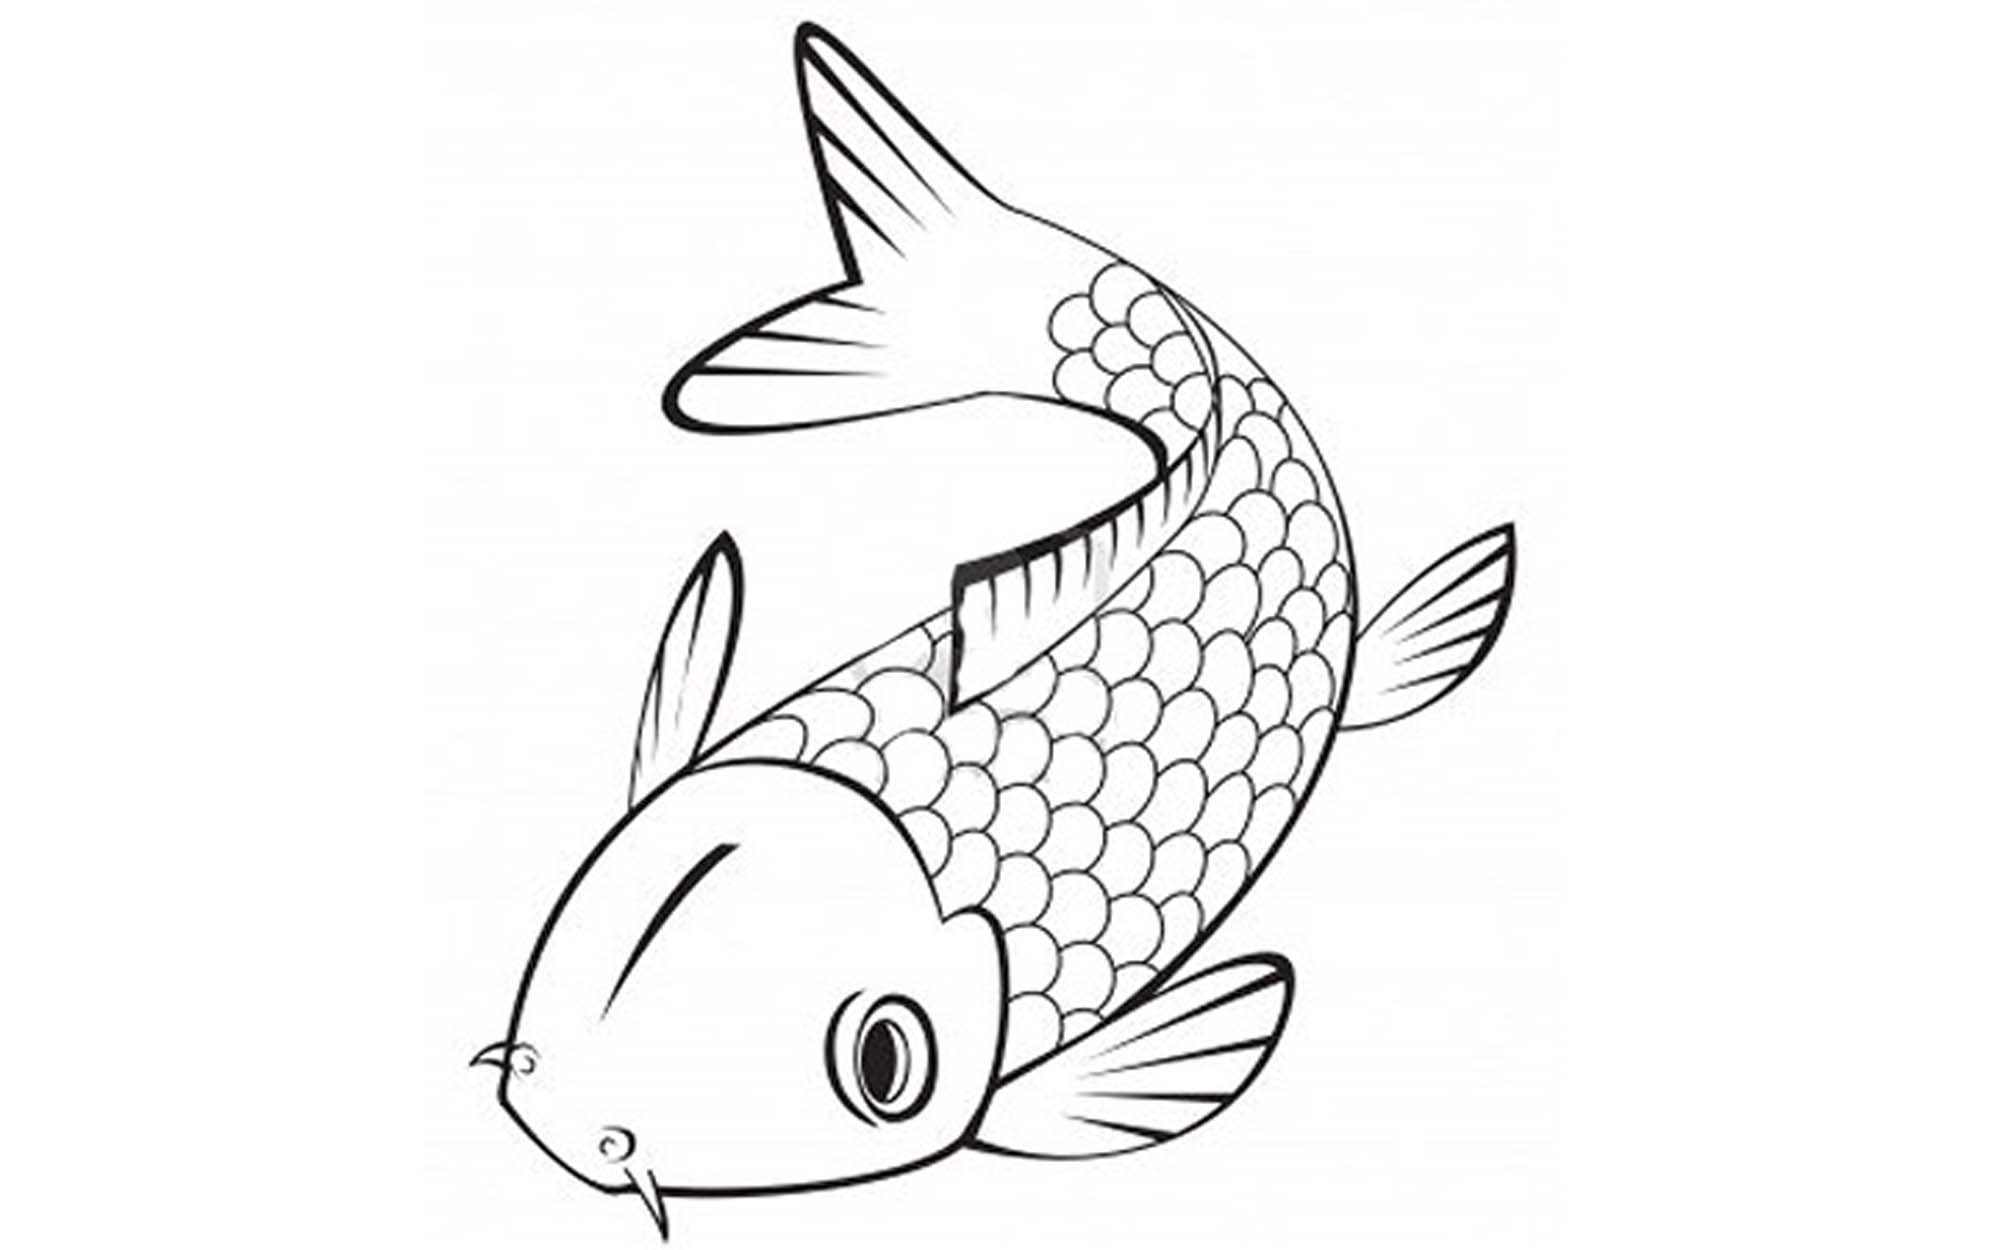 Fish printable coloring pages fish coloring pages you for Printable fish coloring pages